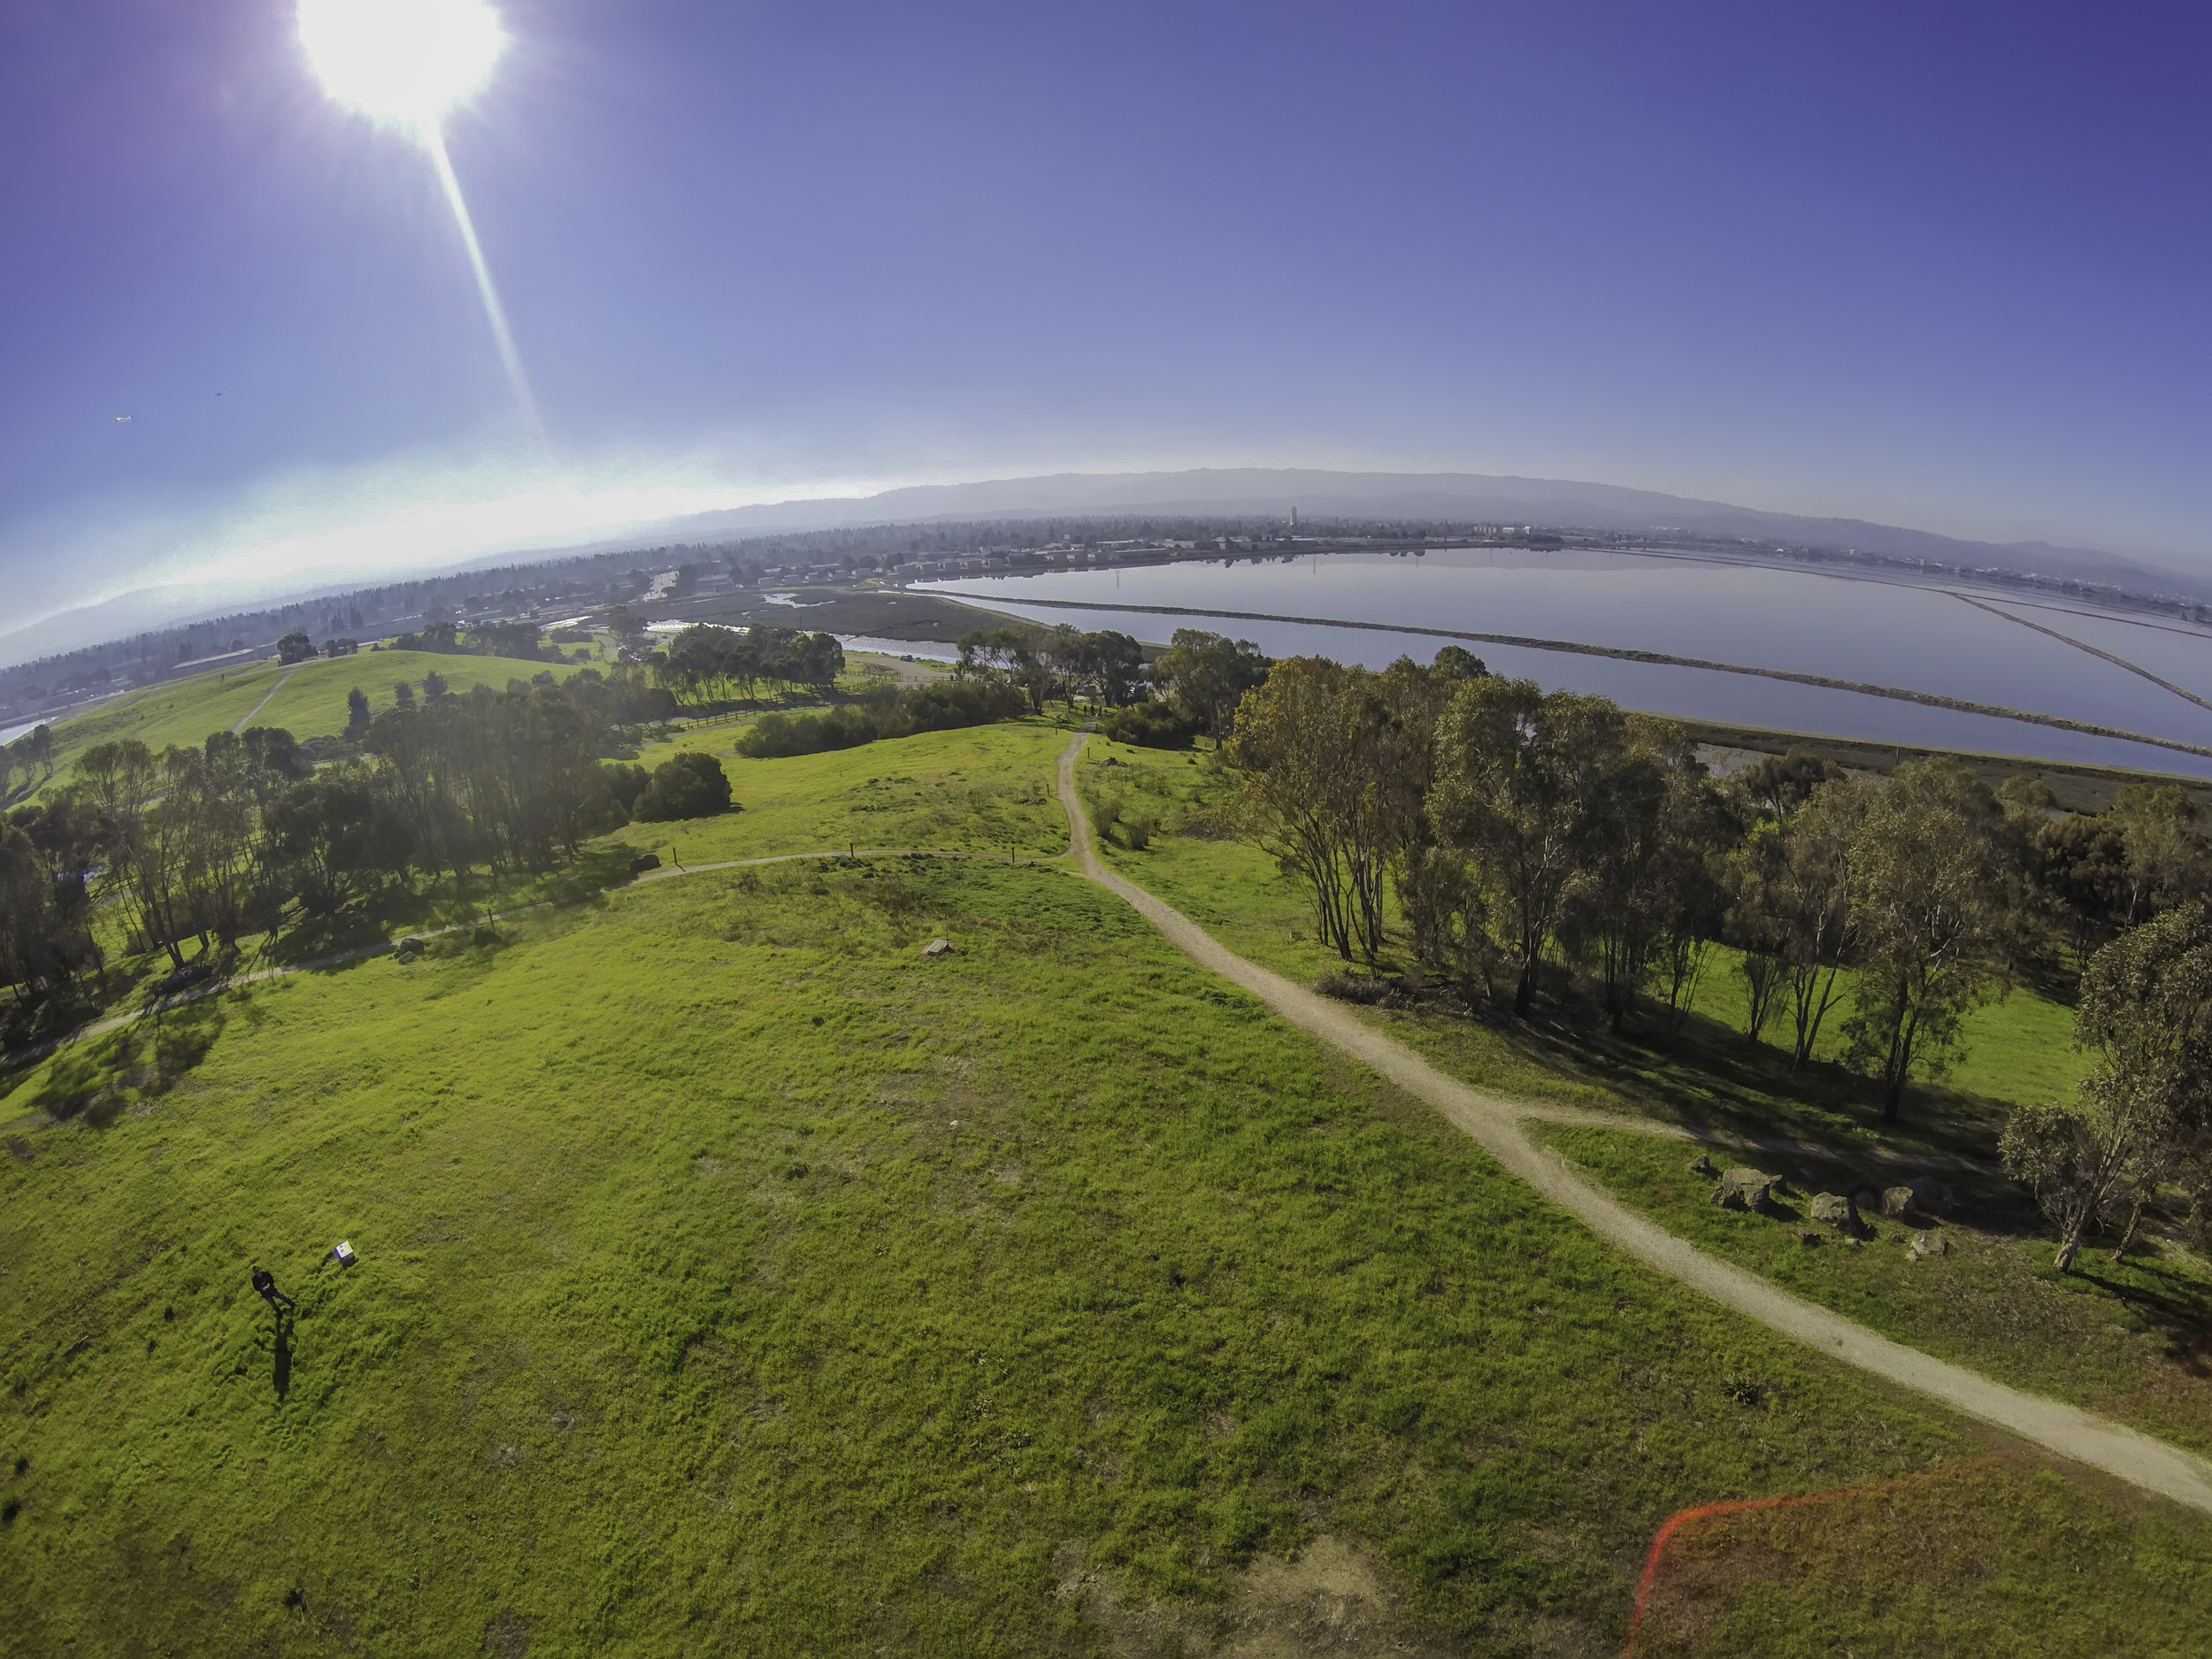 Dronie in Menlo Park, California. Shot with a DJI Phantom 2 and GoPro HERO 4 Black.